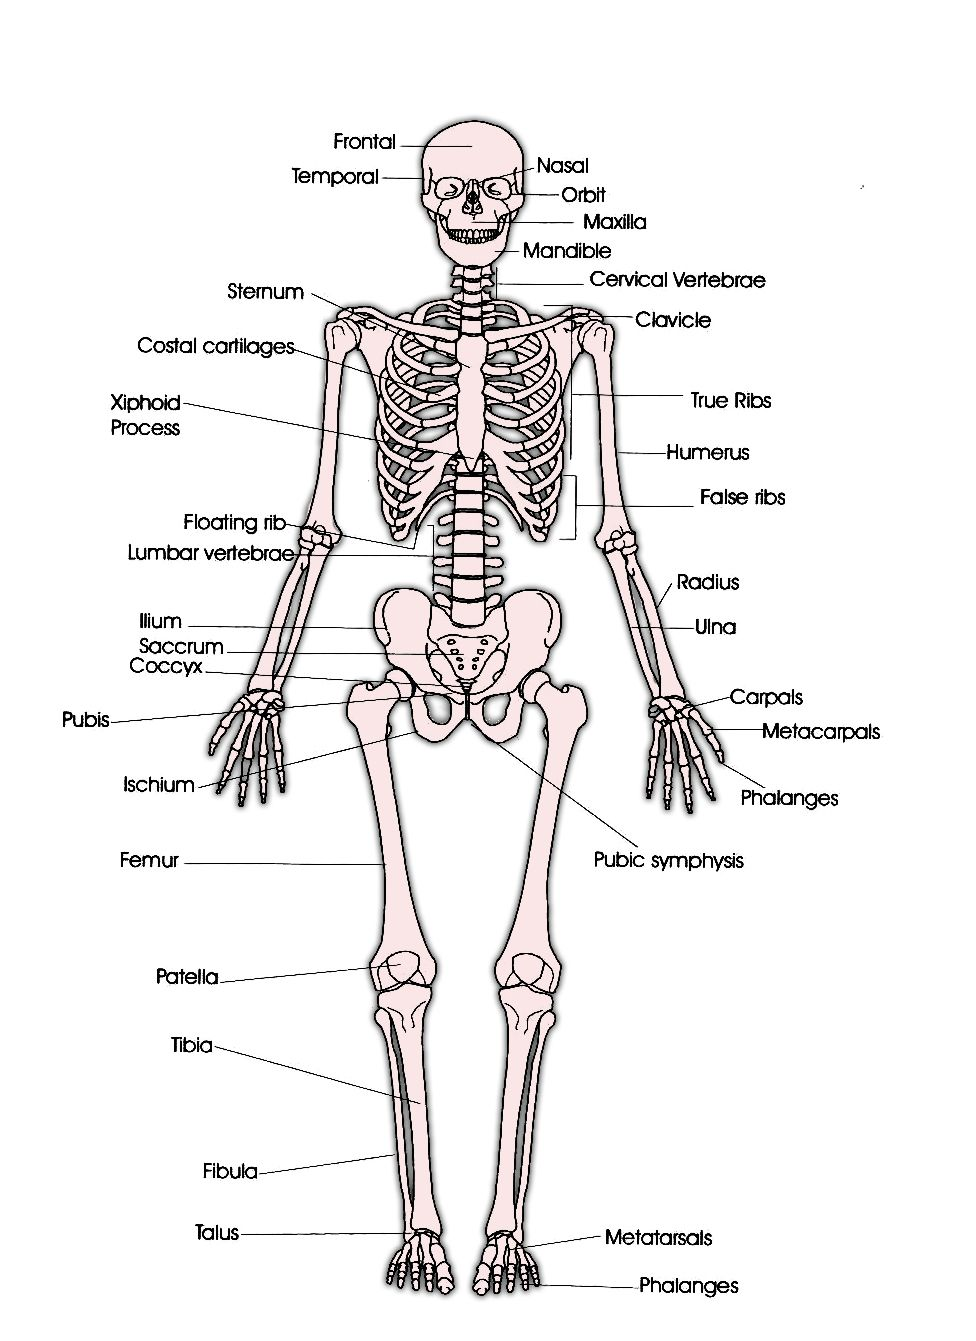 skeletal system  u2013 labeled diagrams human skeleton  the skeletal system includes all of the bones